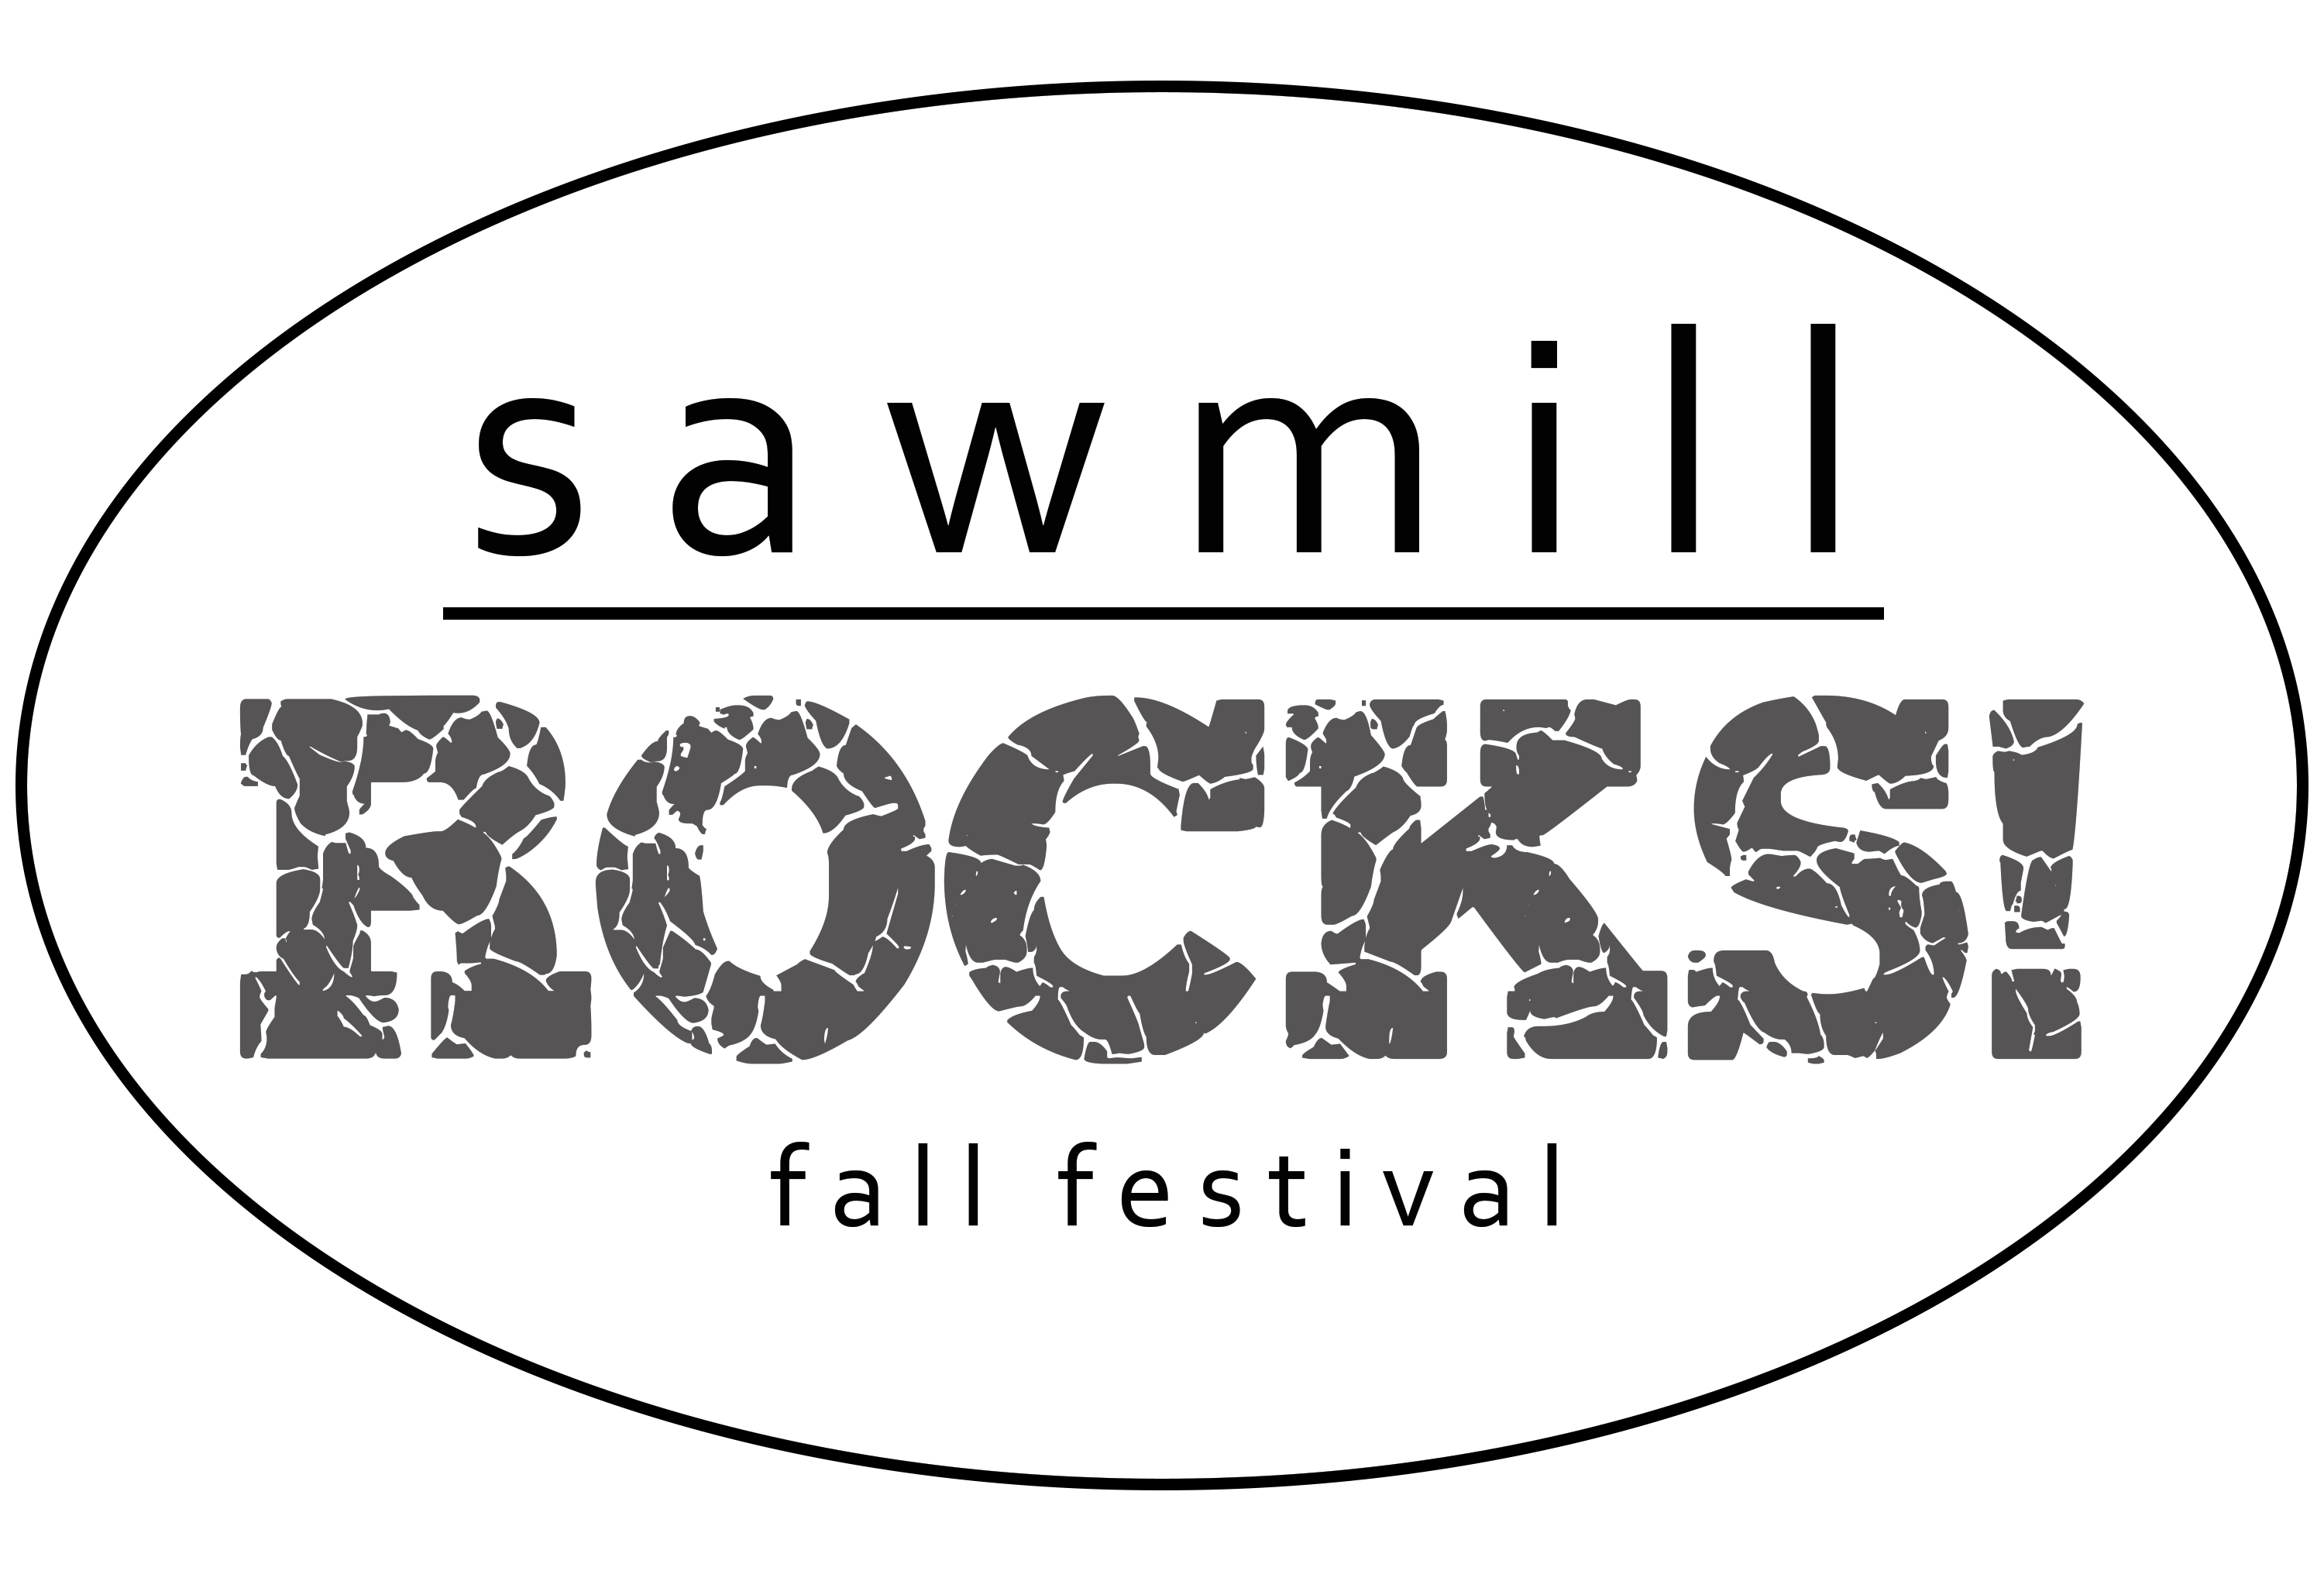 Transparent rocks text. Sawmill fall festival cancelled